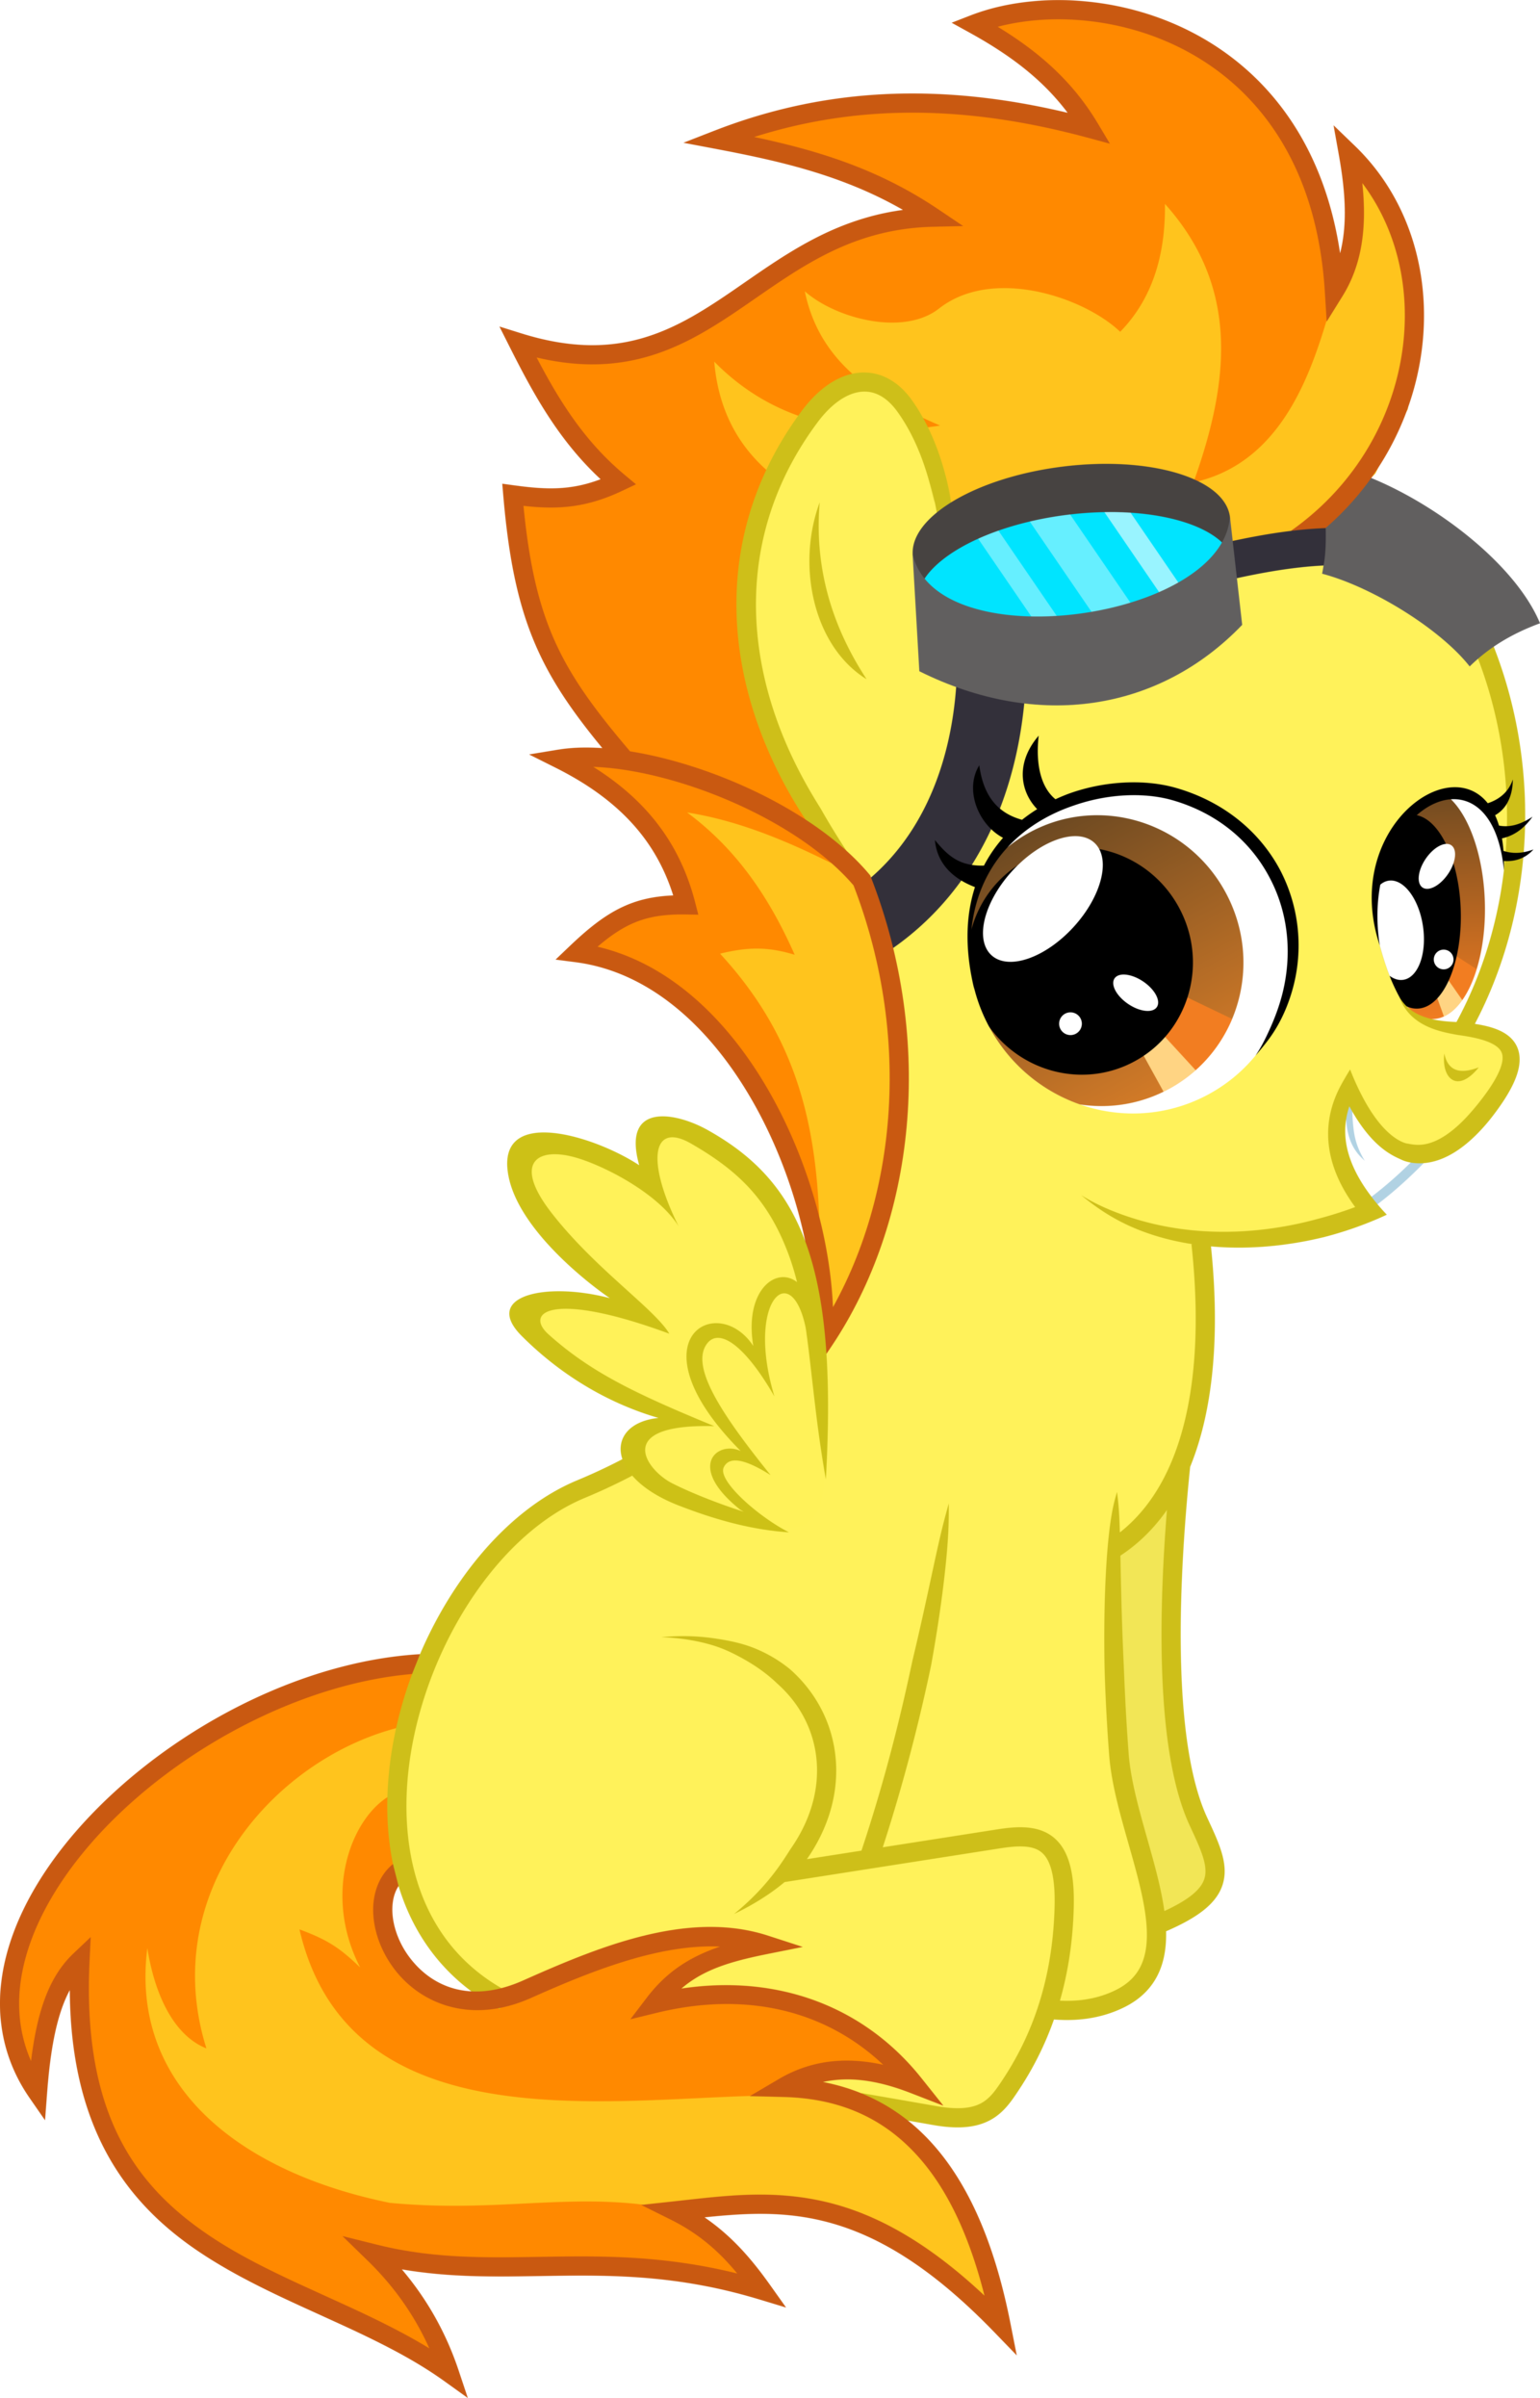 Hourglass clipart yellow. Image my little pony